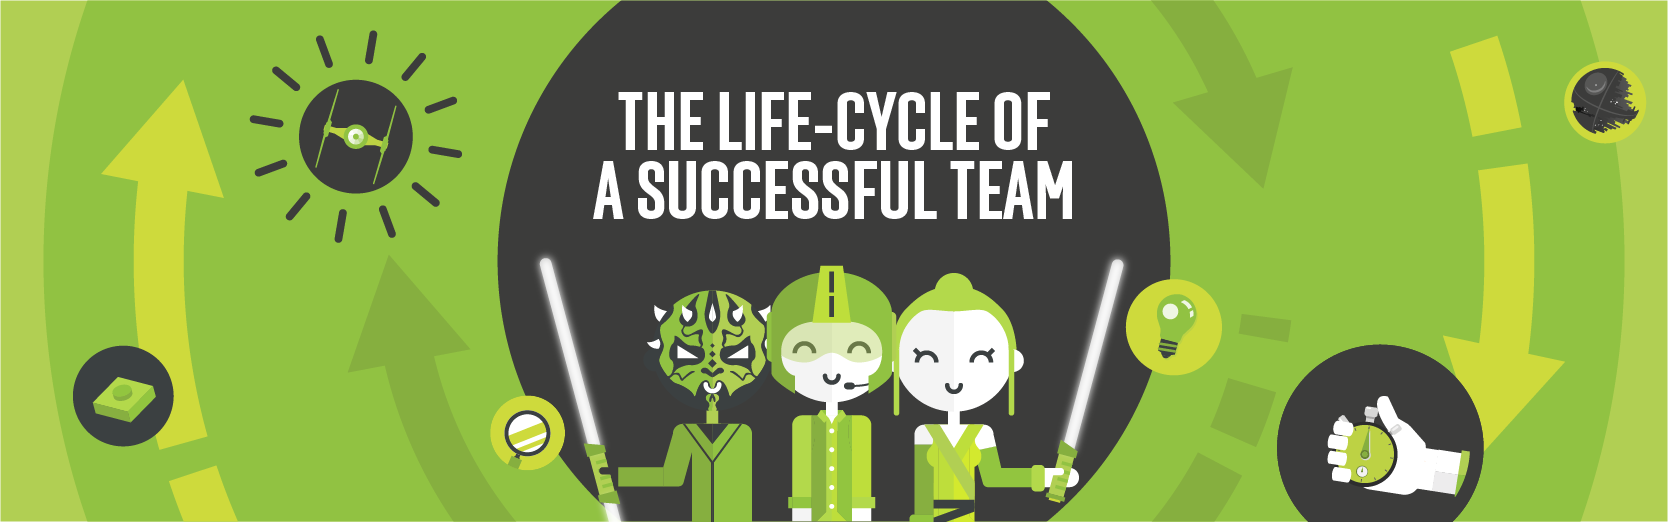 The life-cycle of successful teams